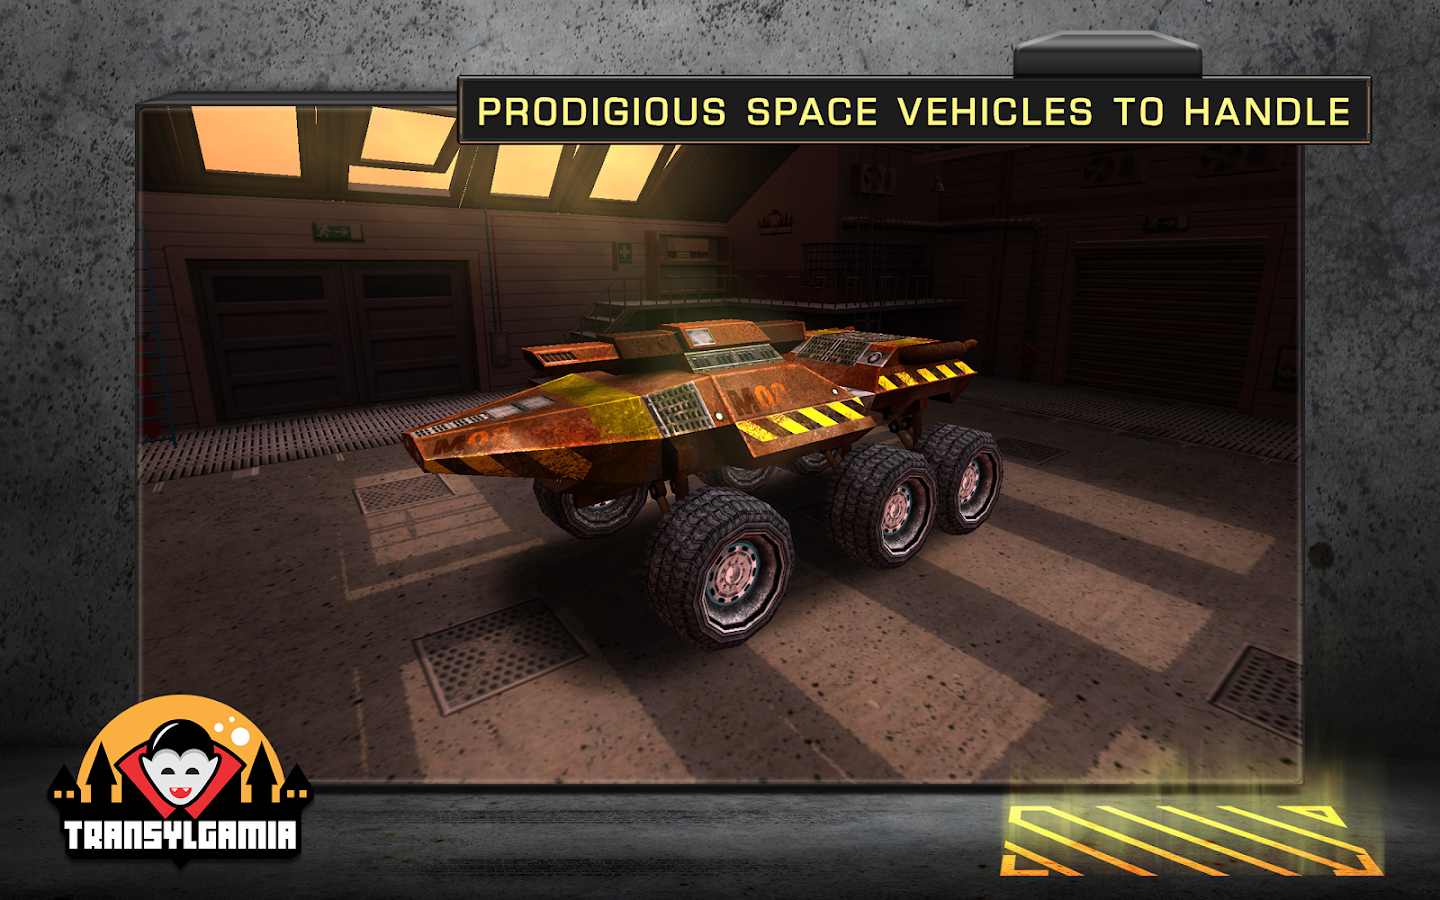 mars rover game apps - photo #8